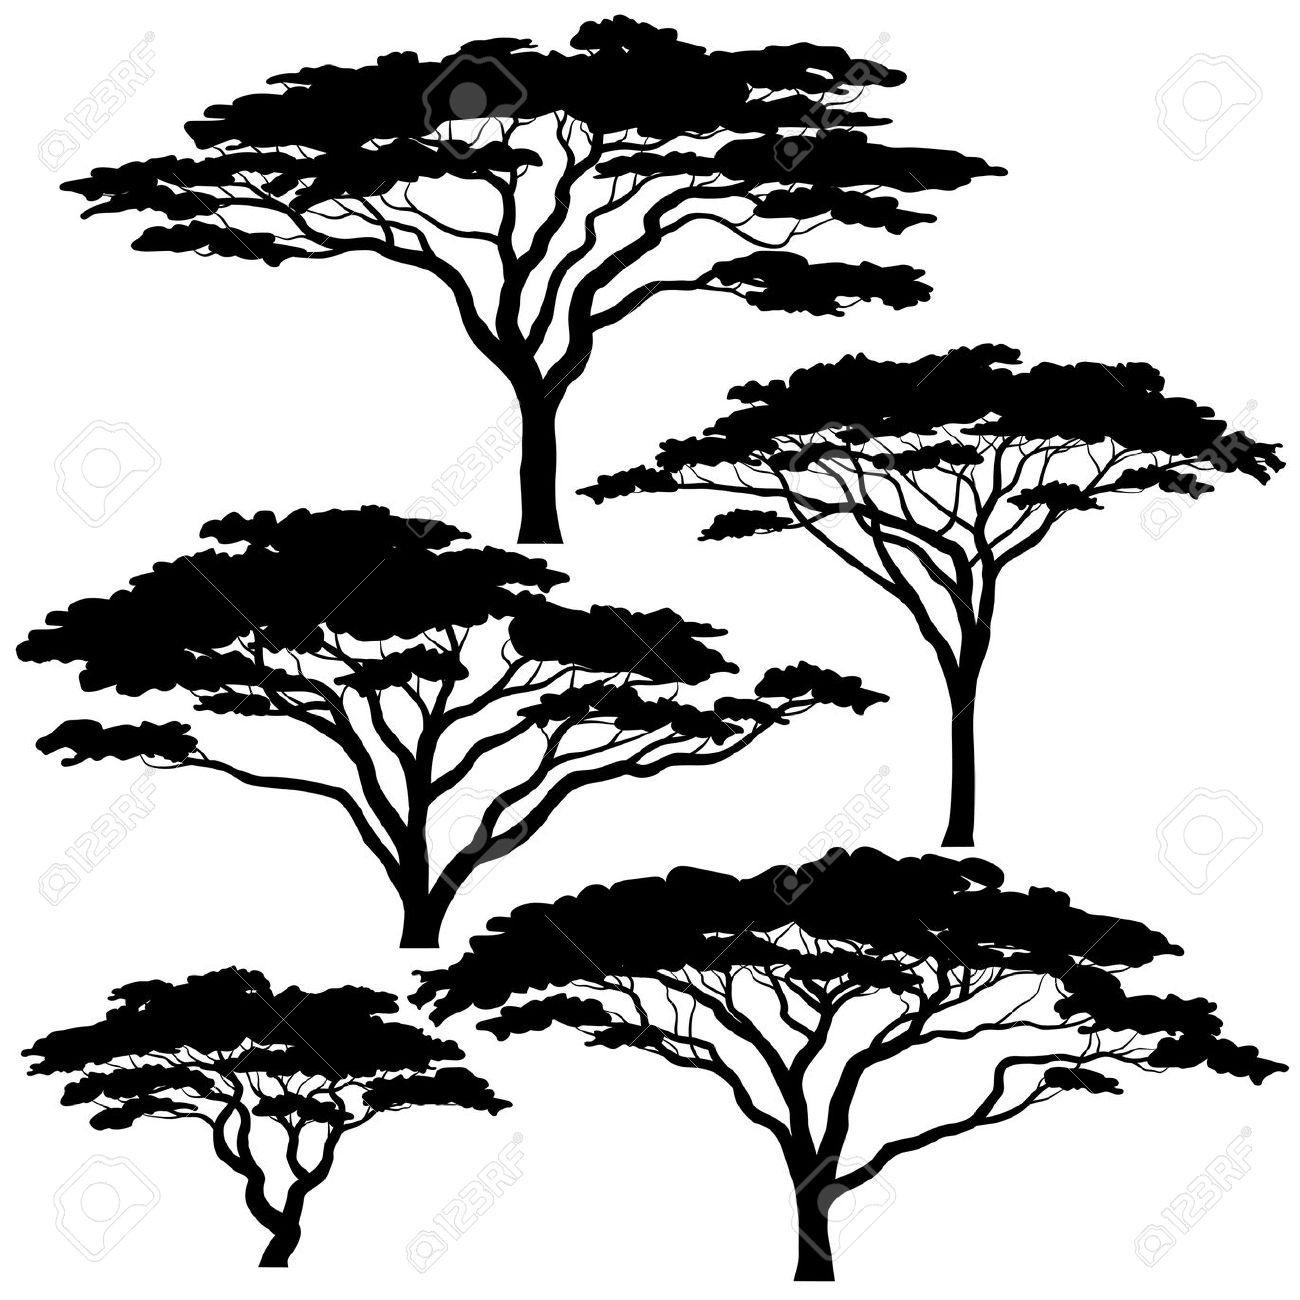 Branch clipart african tree Eps8 silhouettes  of vector